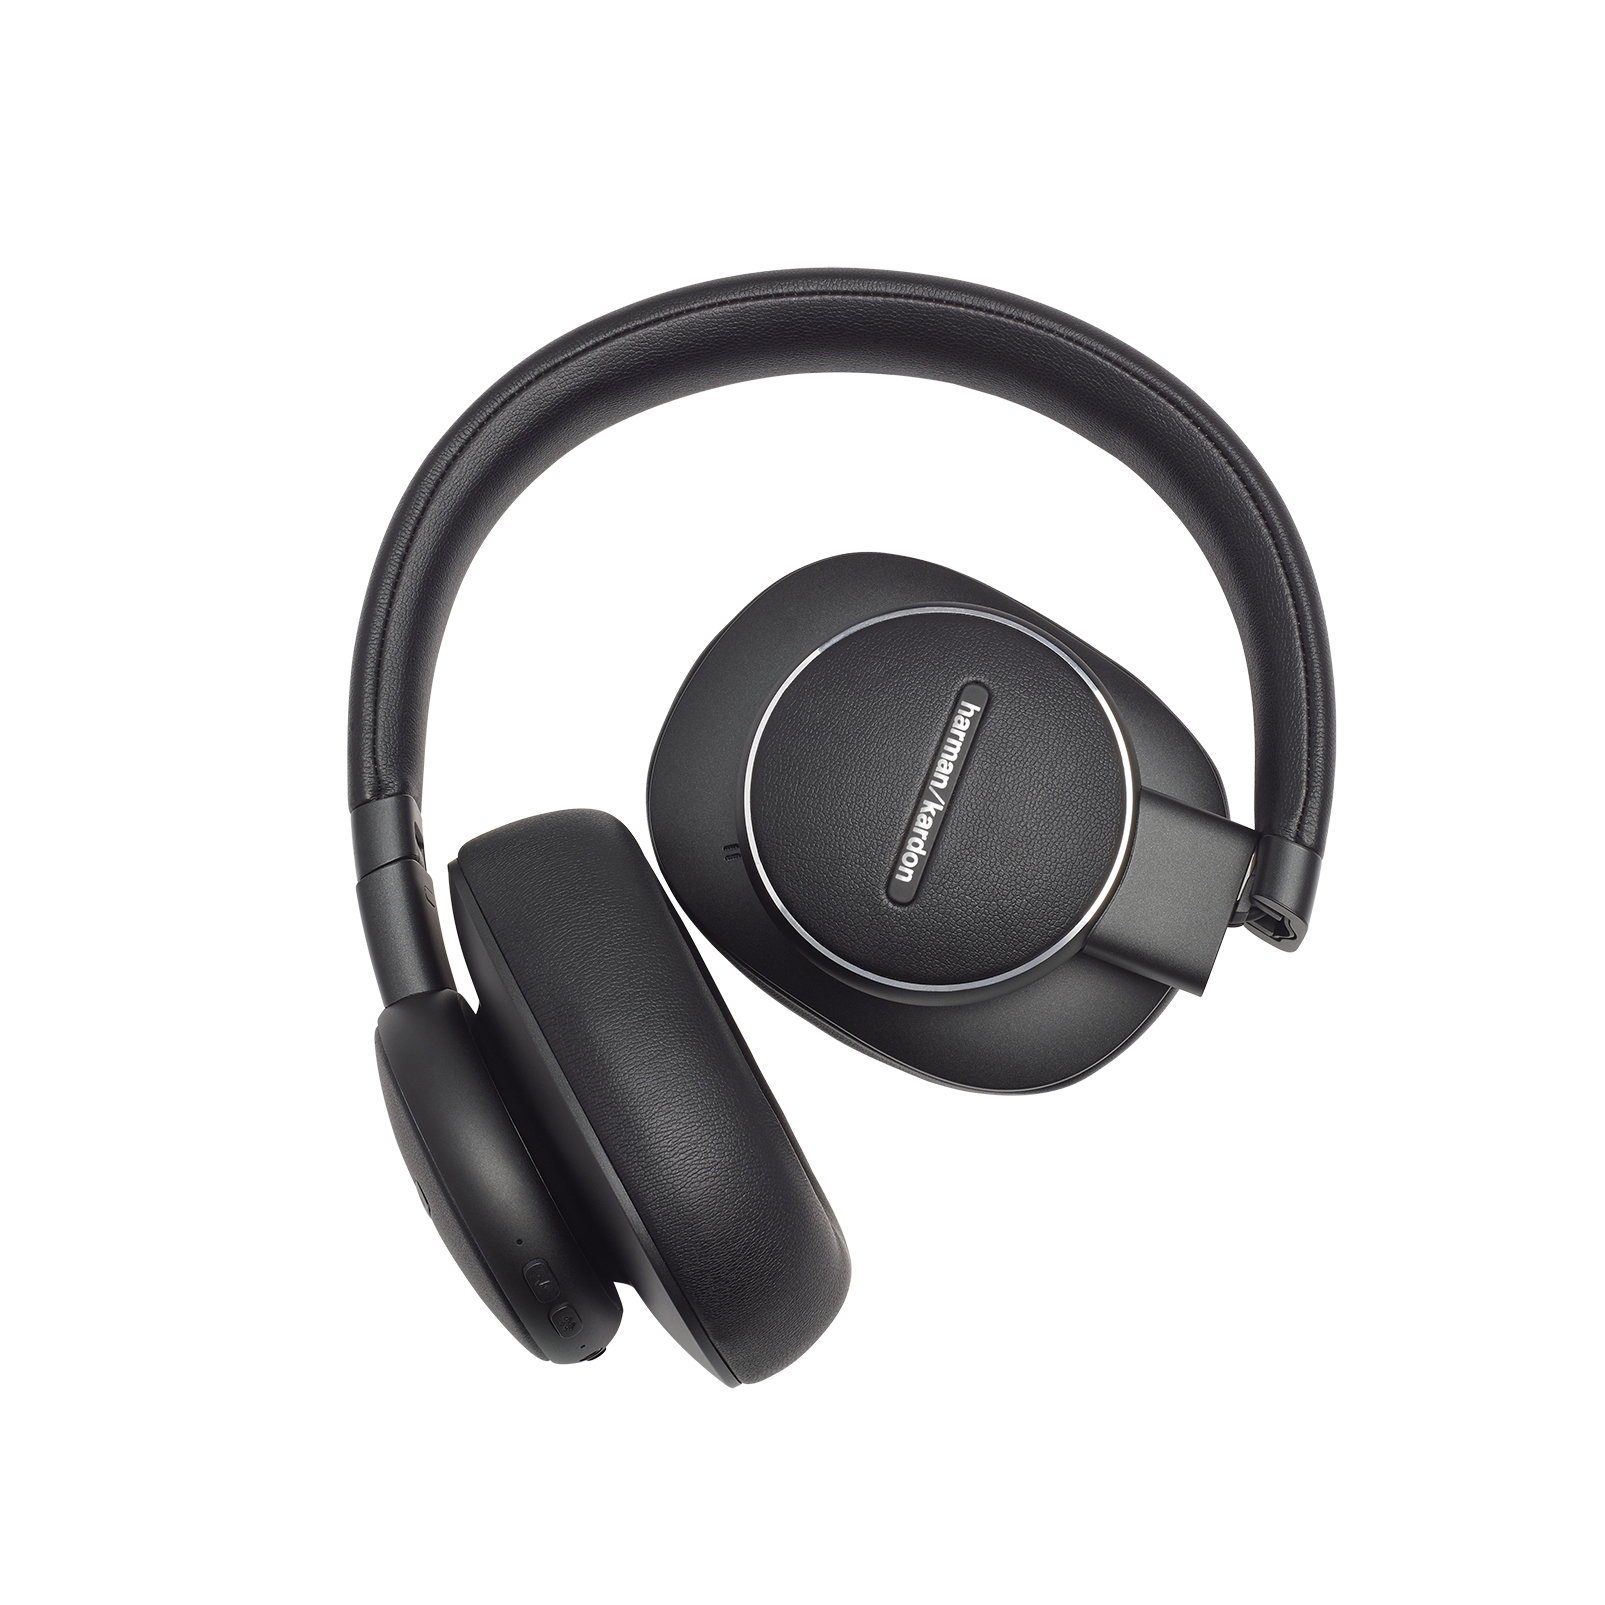 Harman Kardon FLY ANC - Black - Wireless Over-Ear NC Headphones - Detailshot 4